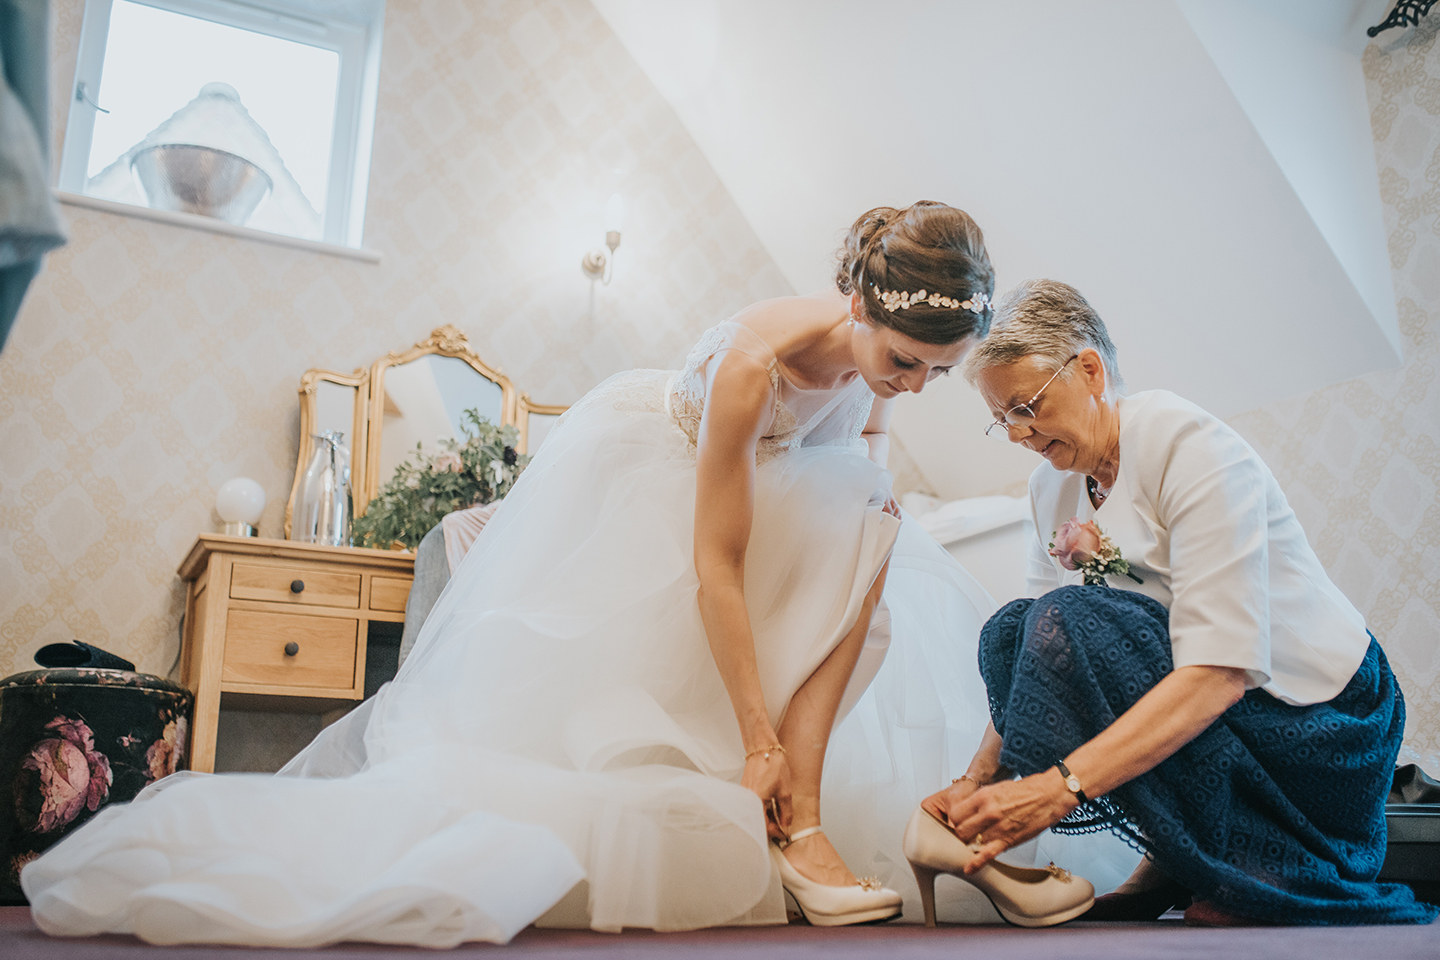 A bride makes her final wedding preparations in the Bridal Boudoir at Bassmead Manor Barns